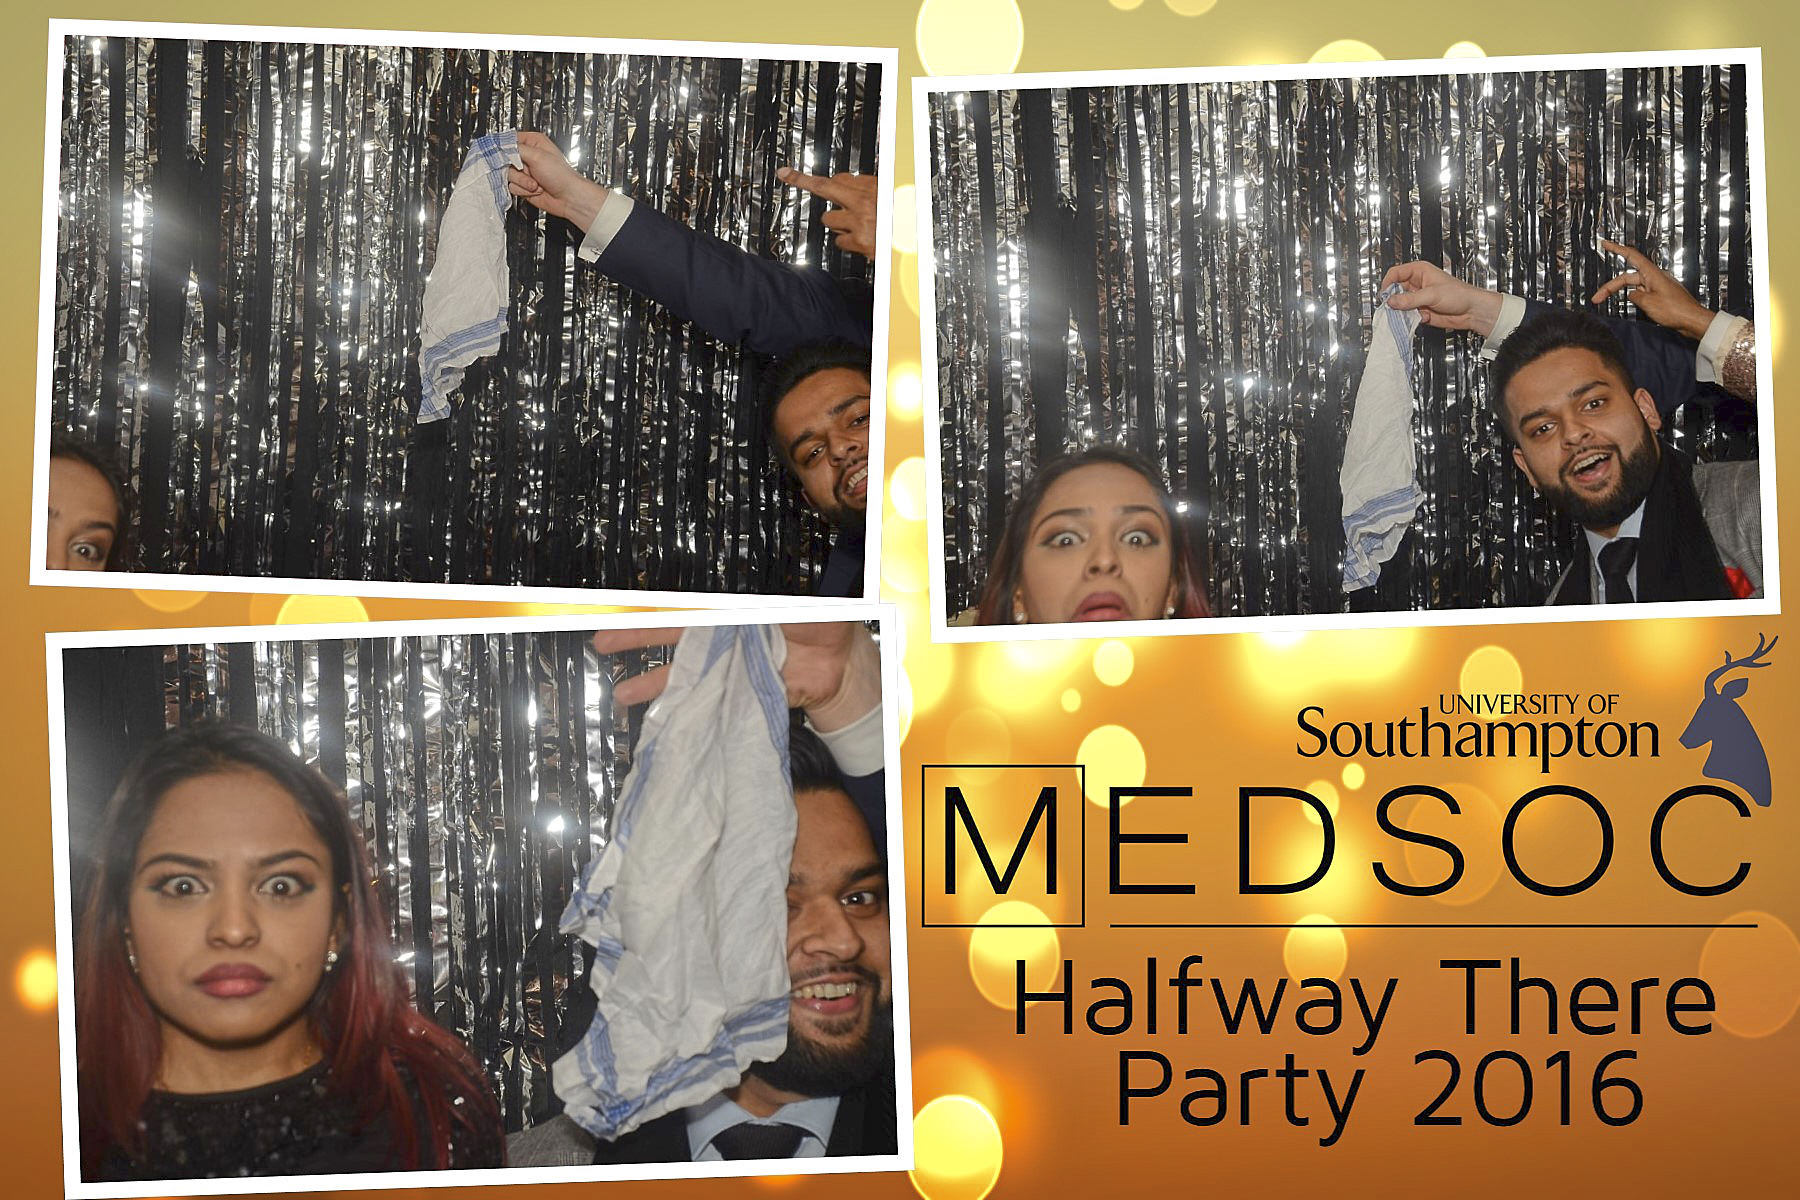 MedSoc Halfway There Party 2016 DS000537.jpg